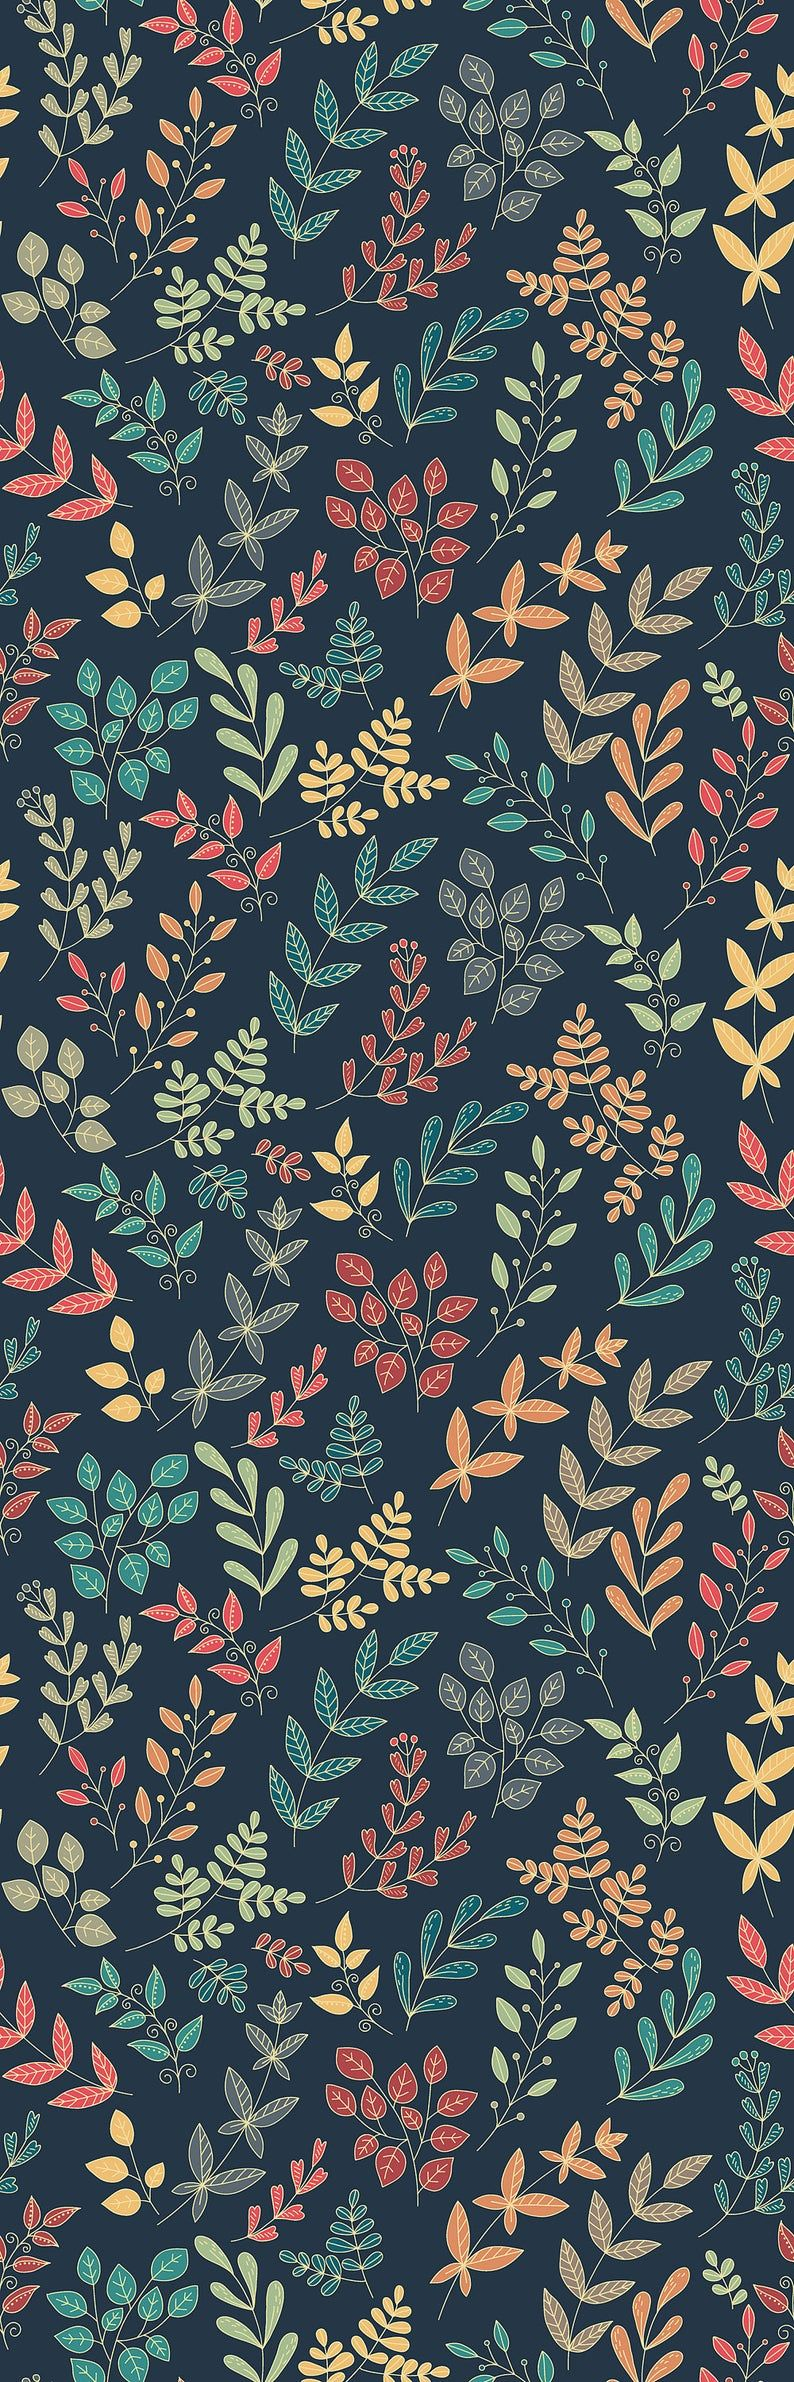 Removable Wallpaper Peel And Stick Wallpaper Self Adhesive Wallpaper Flower Pattern In 2021 Cute Home Screen Wallpaper Cute Home Screens Backgrounds Phone Wallpapers